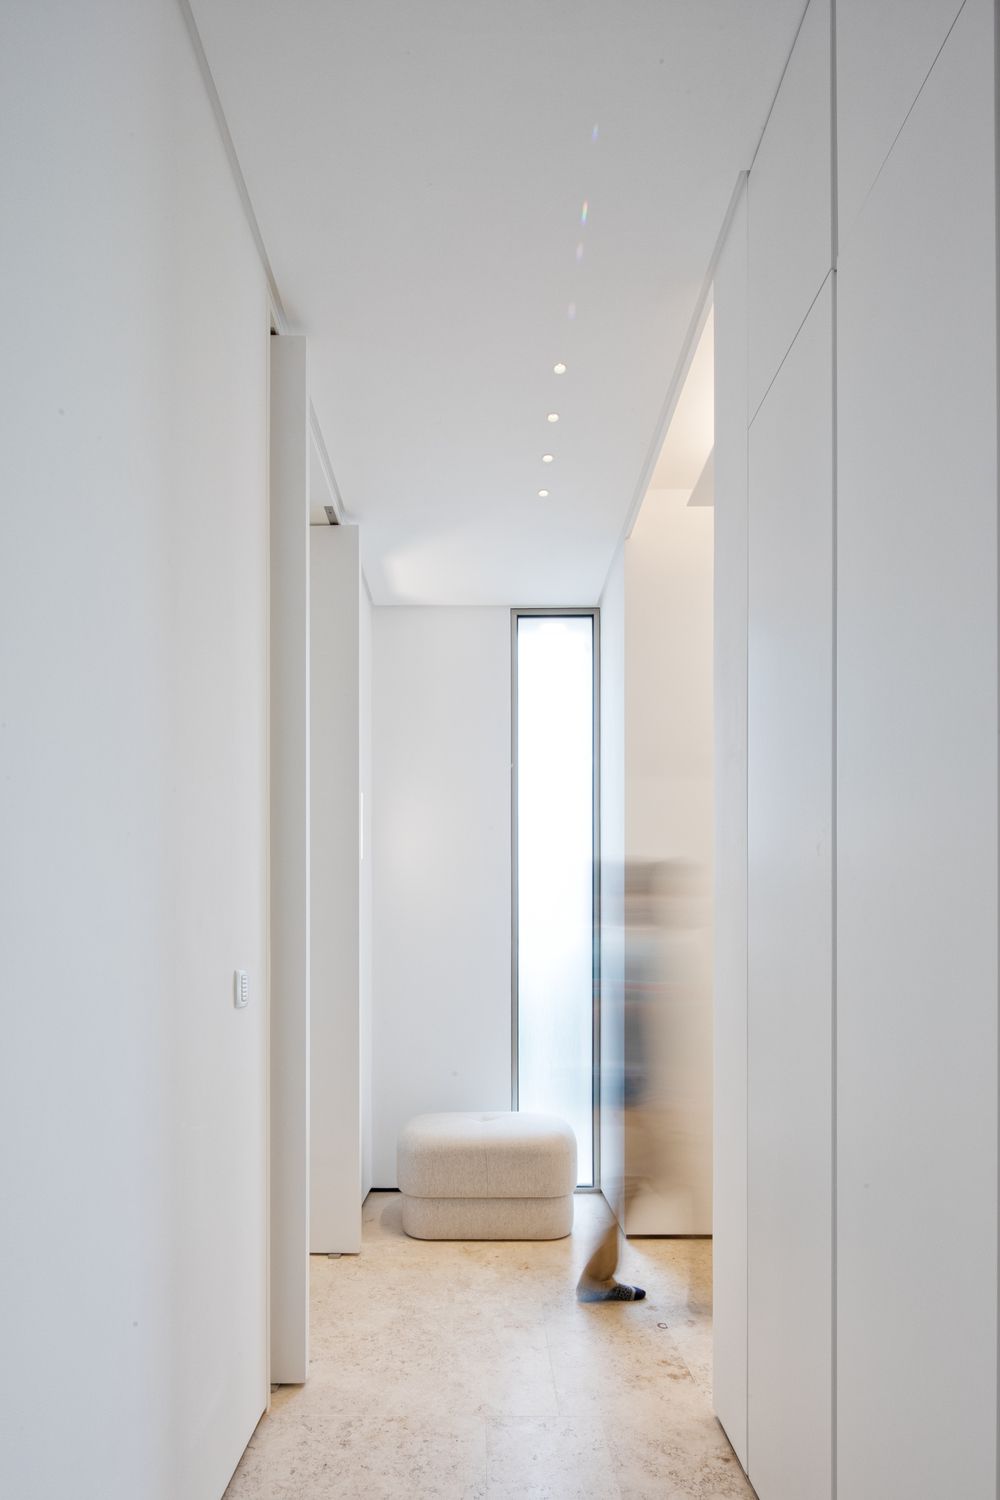 This is a simple and bright white hallway with white walls and ceiling brightened by the window on the far wall with a small ottoman.